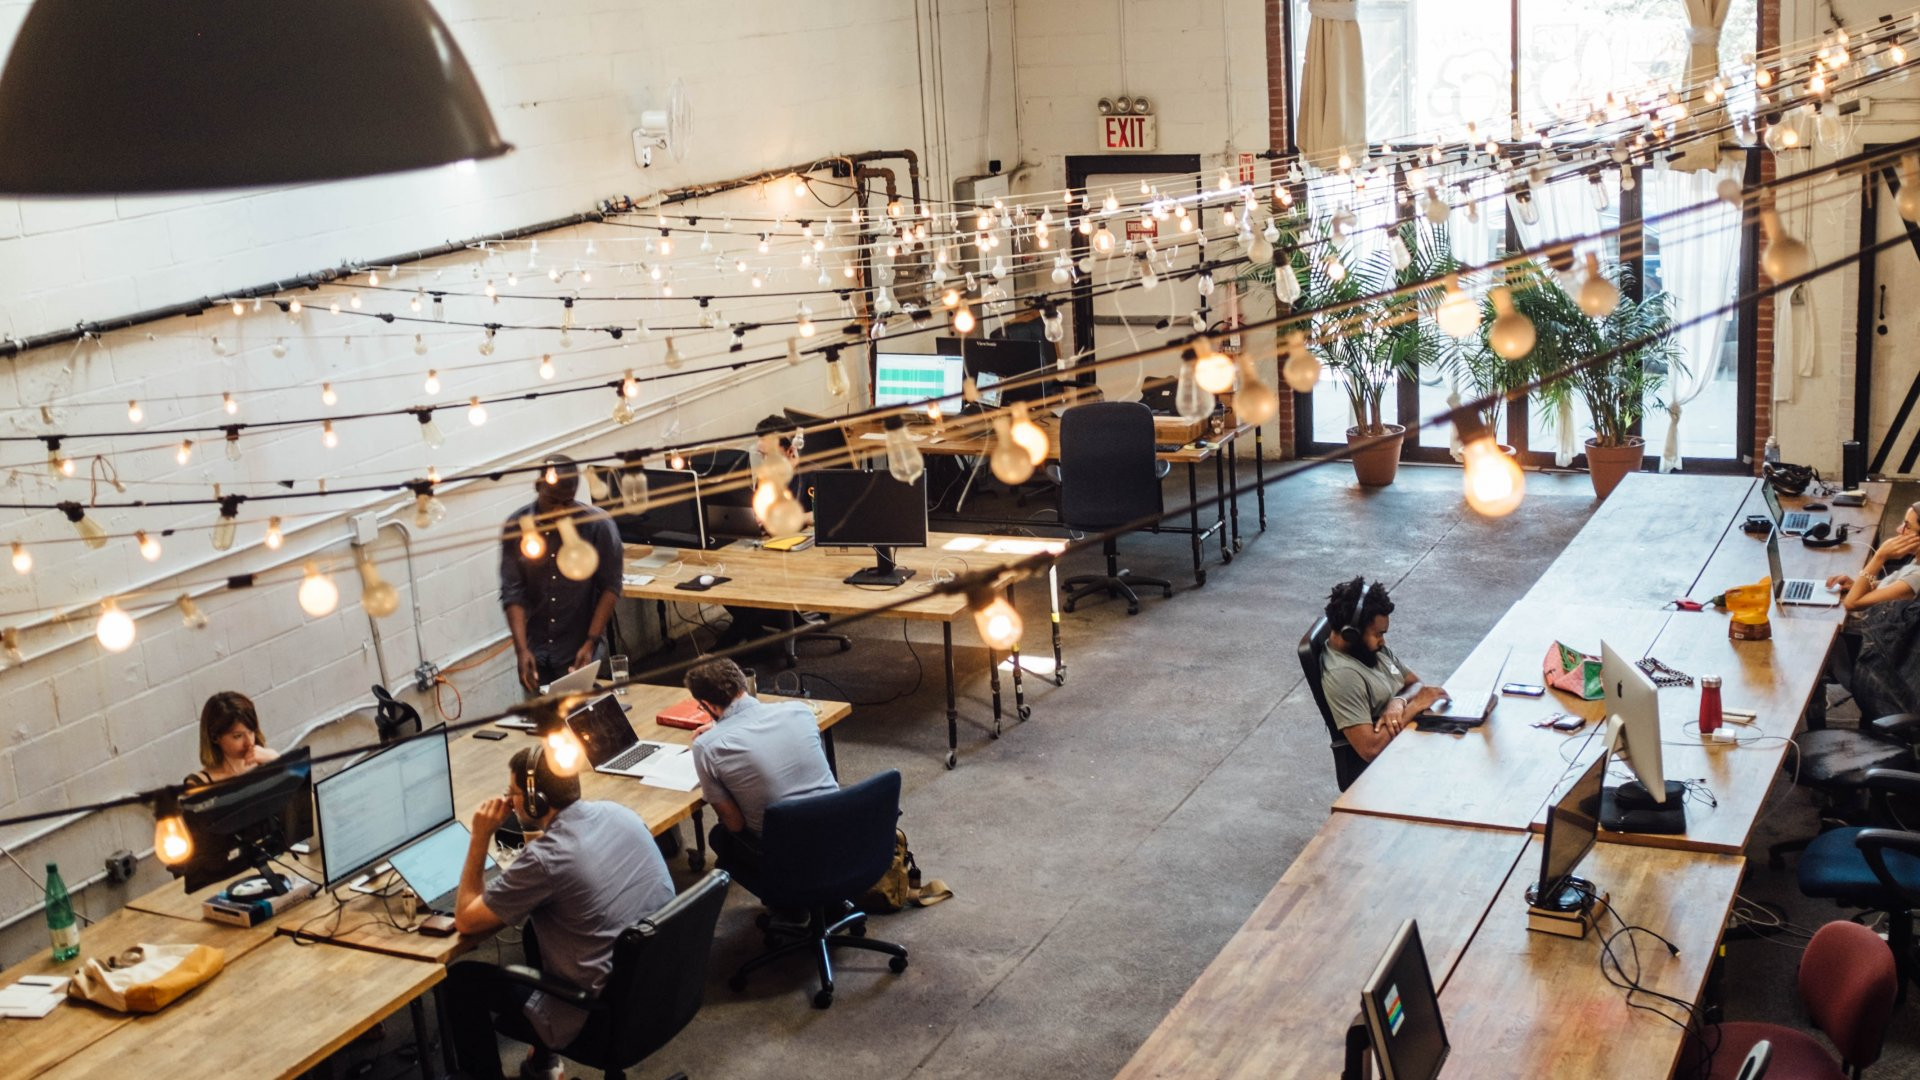 One of These Founders Started His Company in a Co-Working Space. Here's How to Know If You Can Do the Same